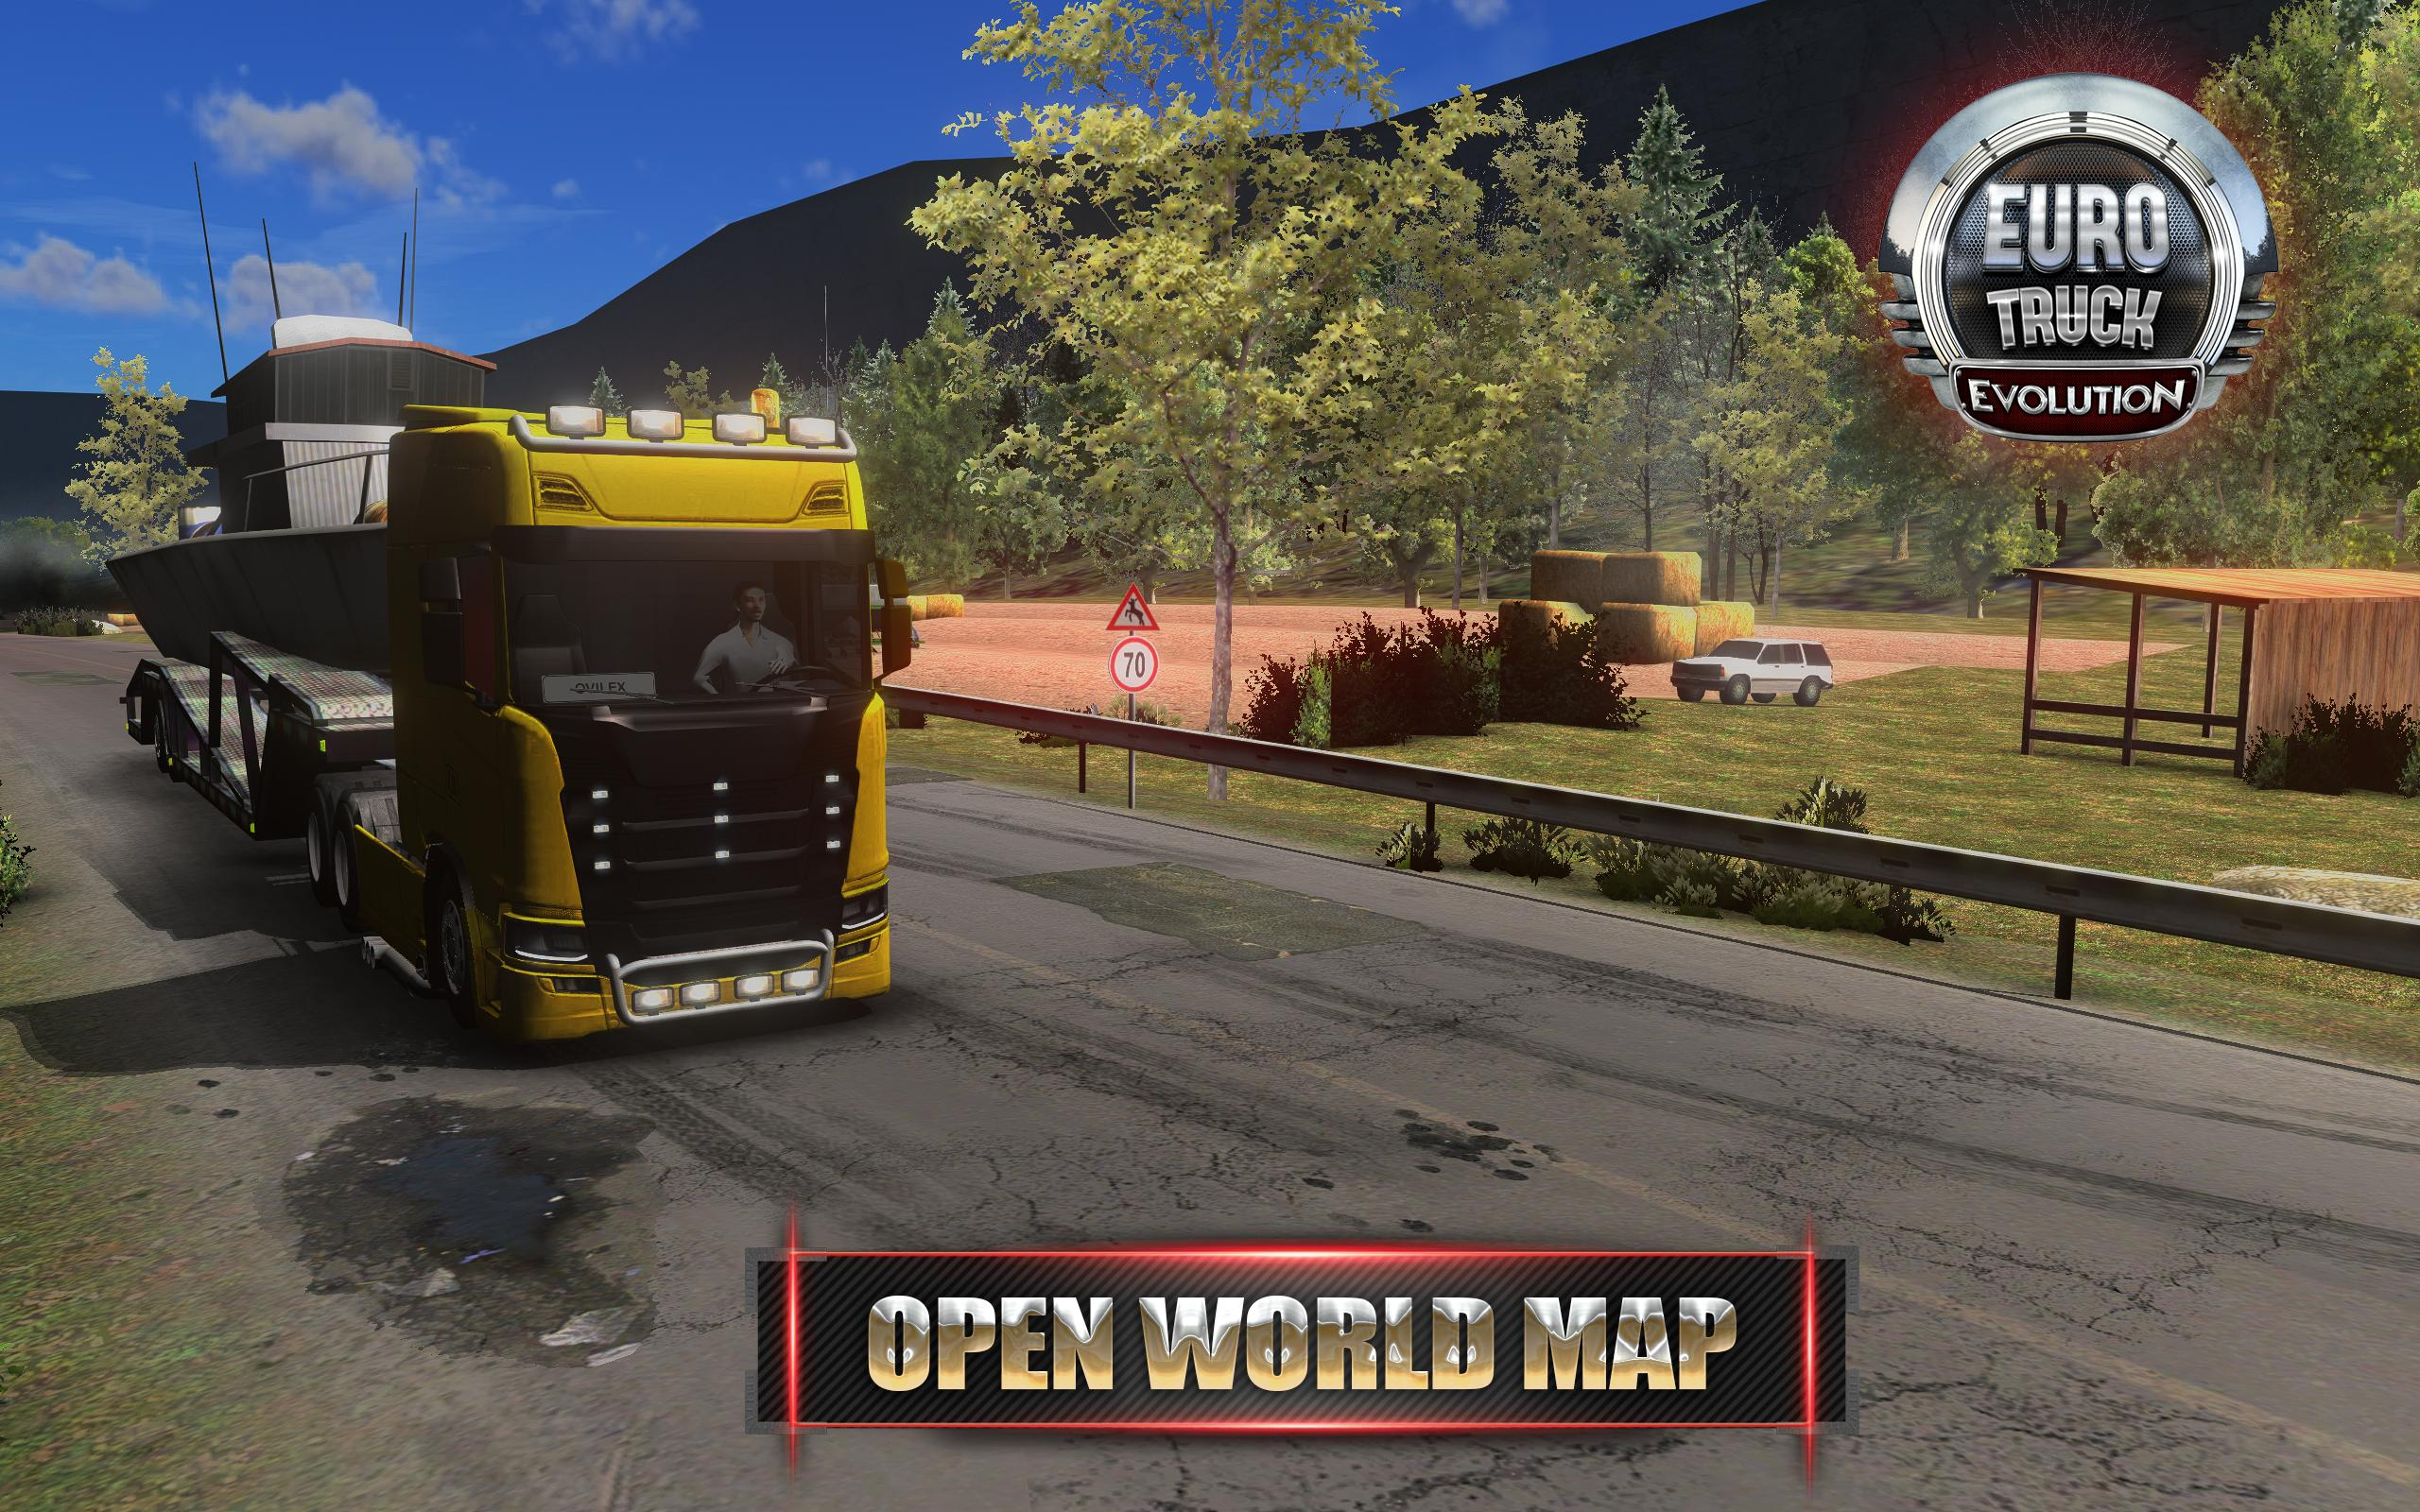 Euro Truck Evolution (Simulator) 3.1 Screenshot 18